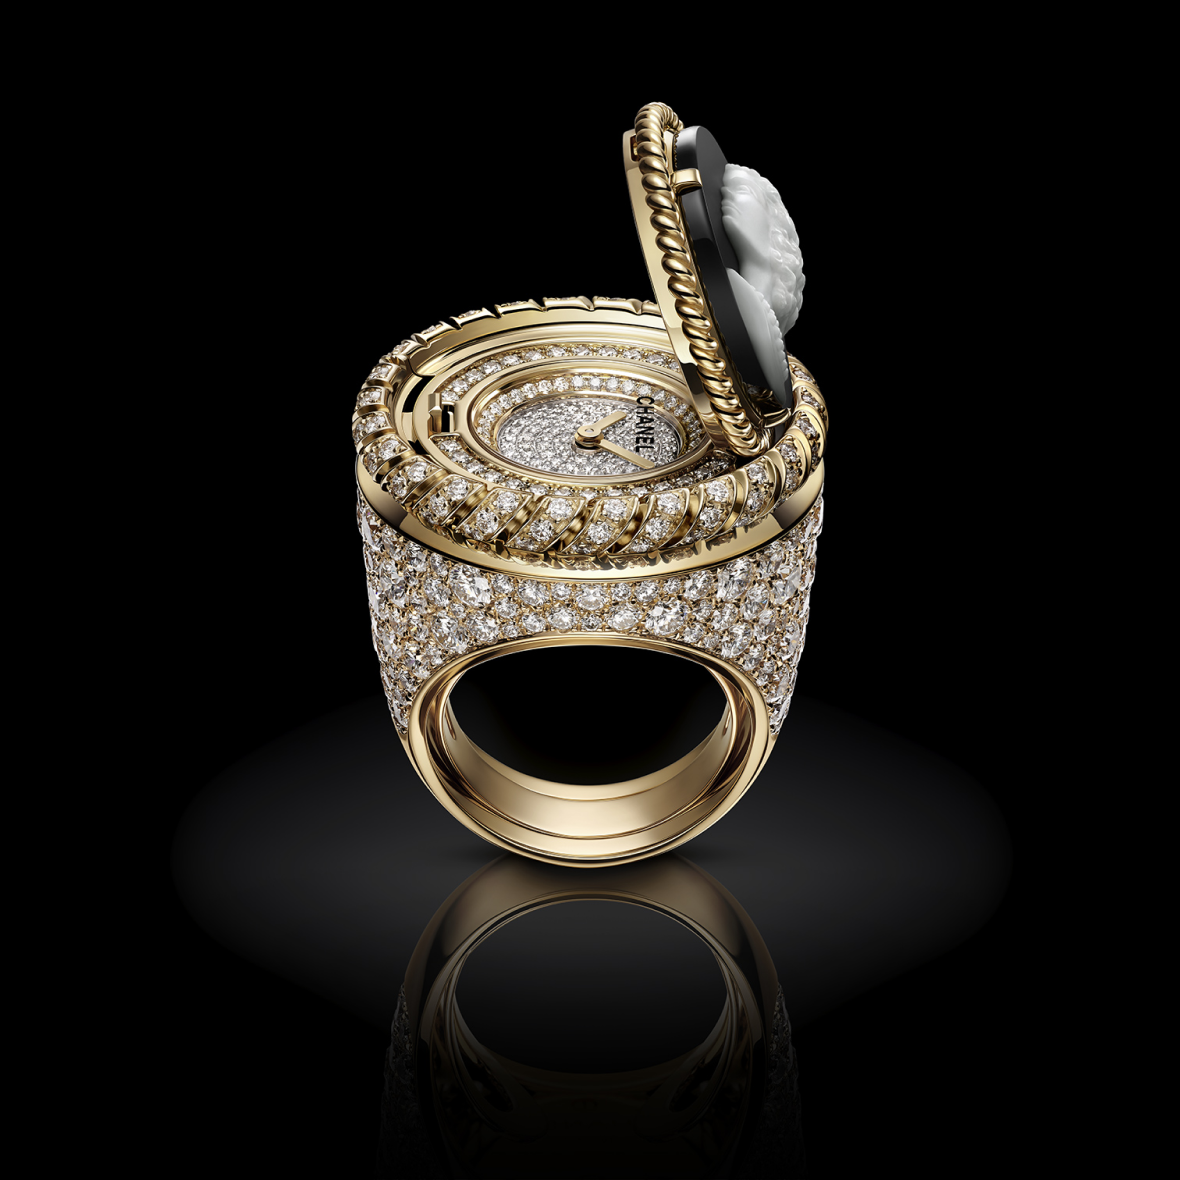 H7072 Mademoiselle Privé Bouton ring open view